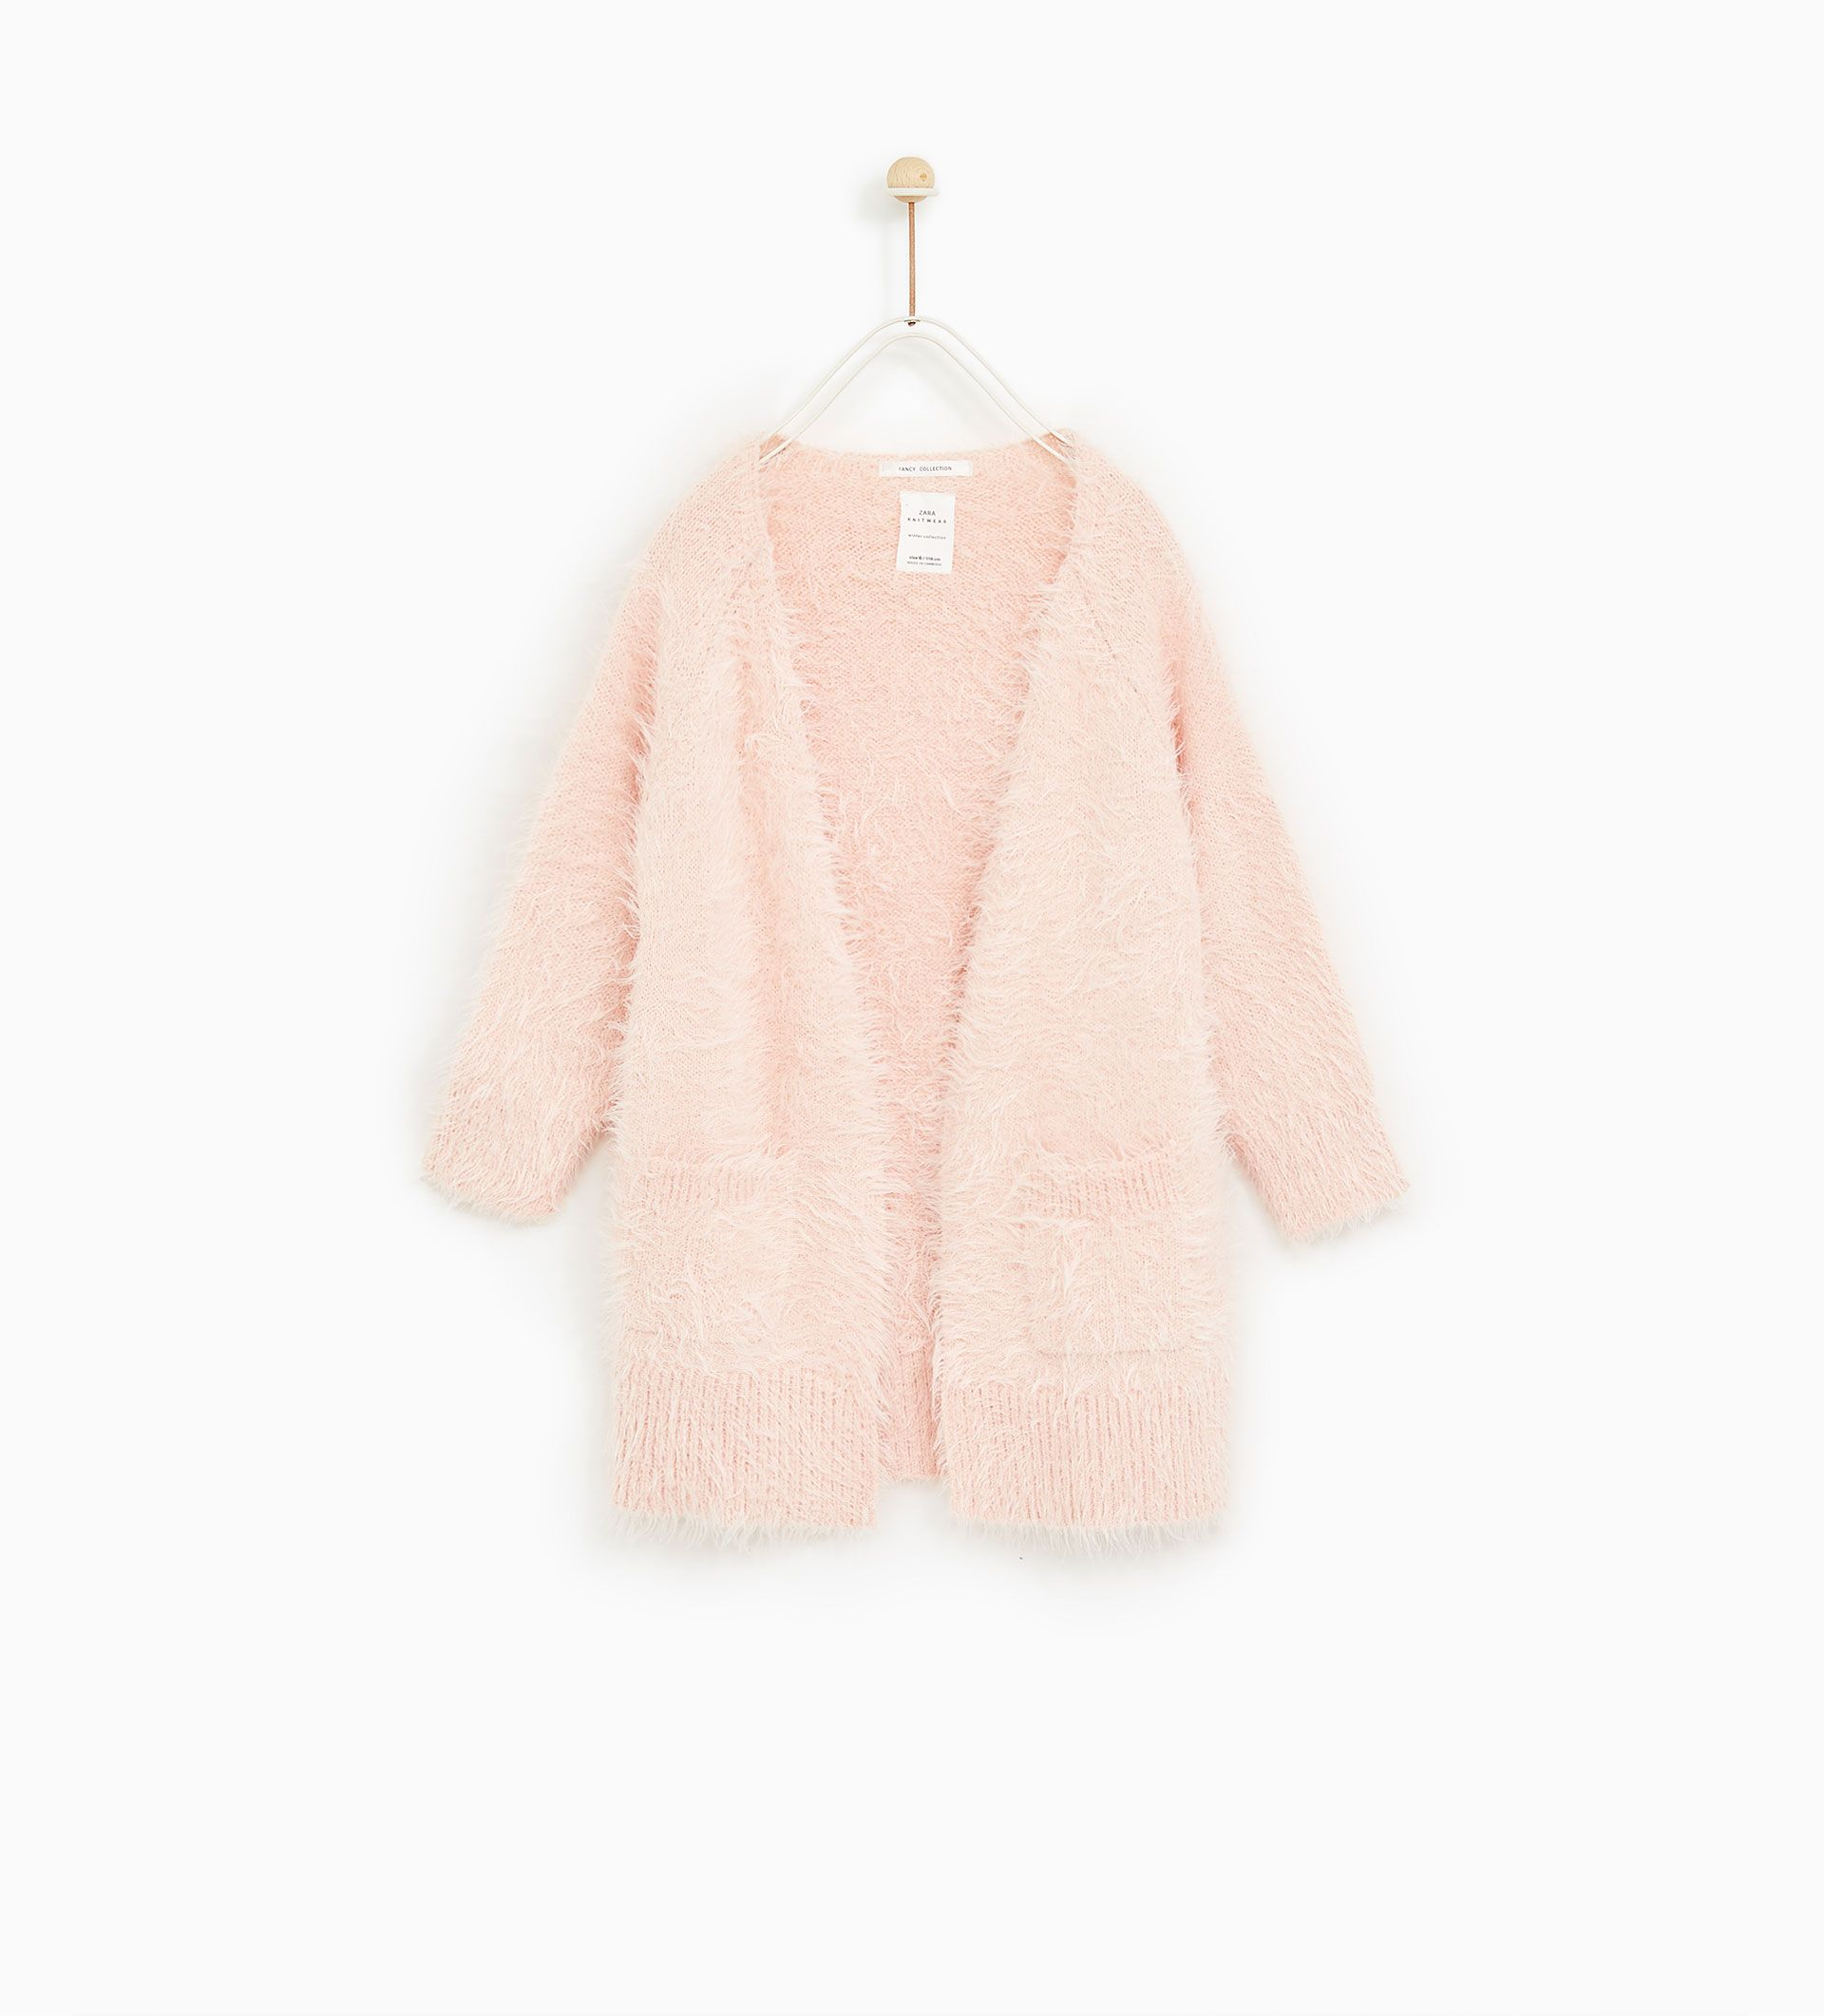 Image 1 Of Feather Knit Cardigan From Zara Baby Girl